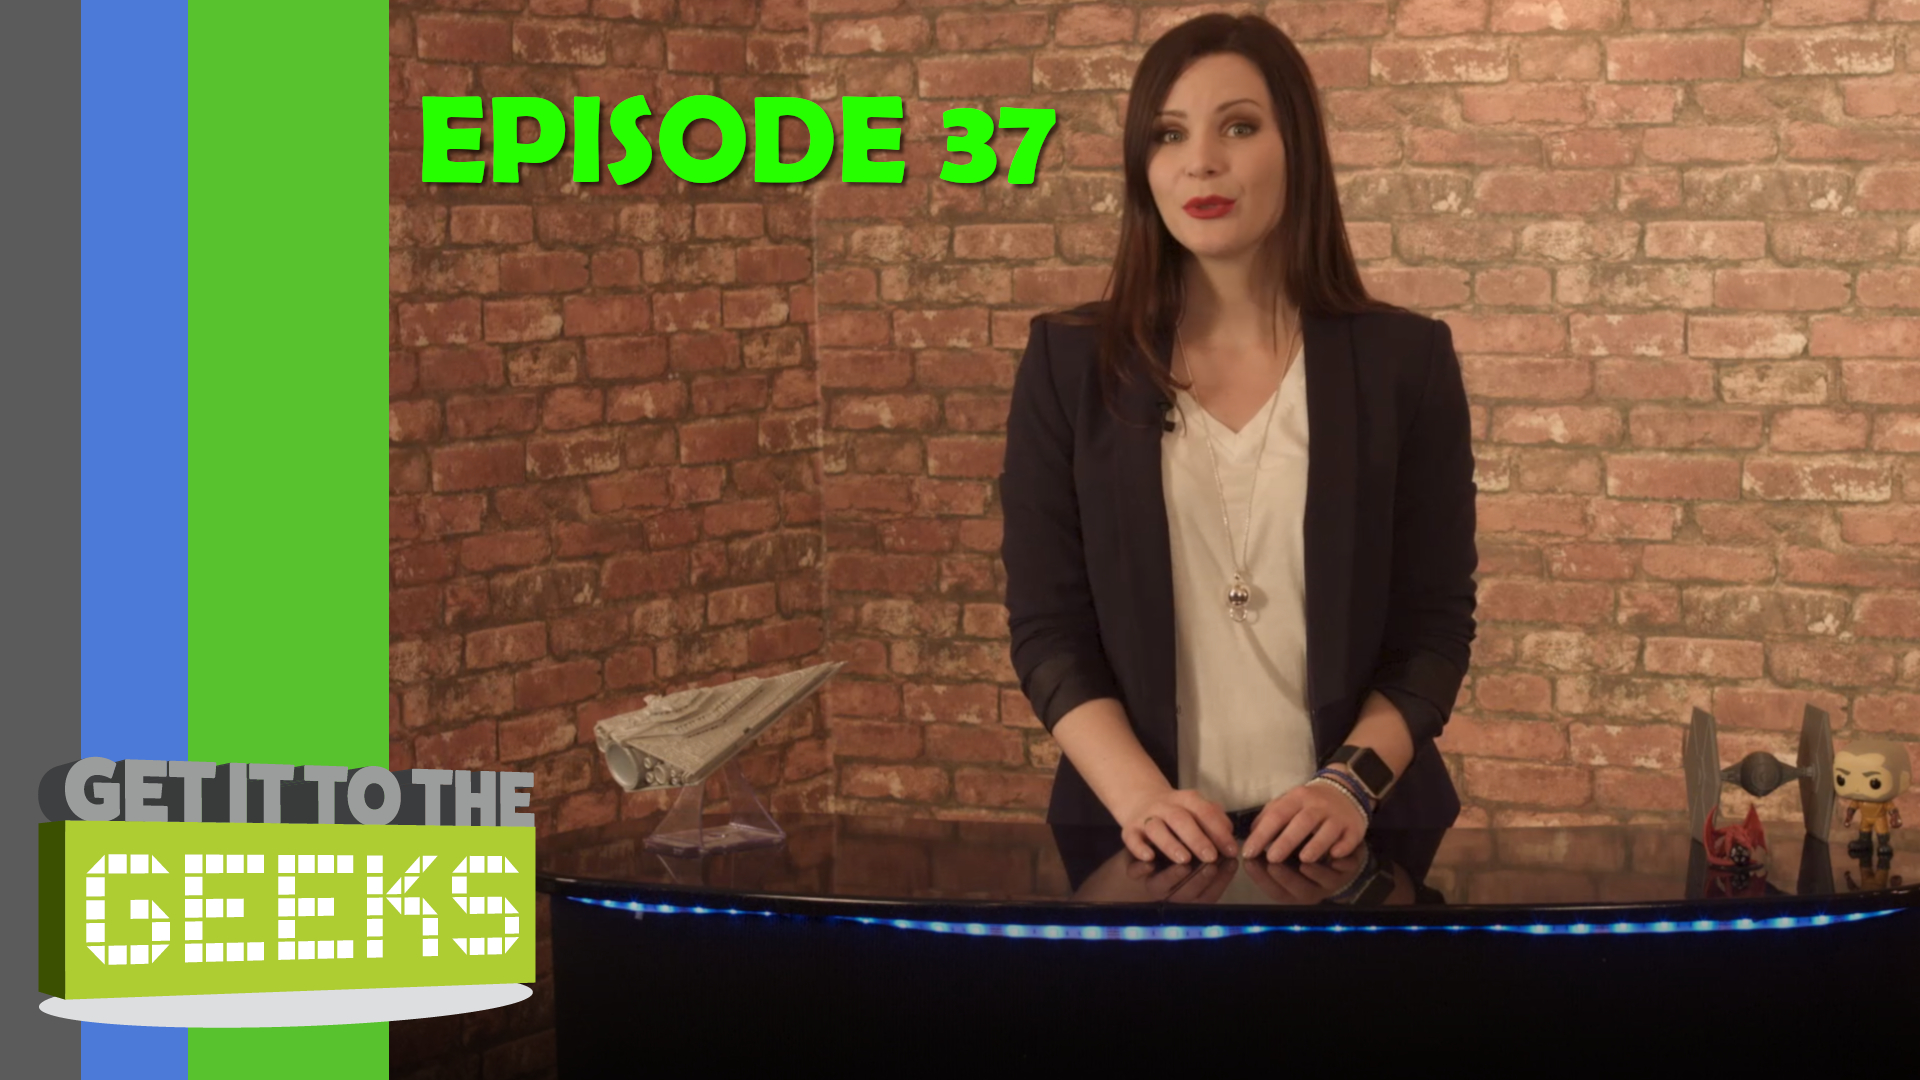 Get It To The Geeks - Episode 37